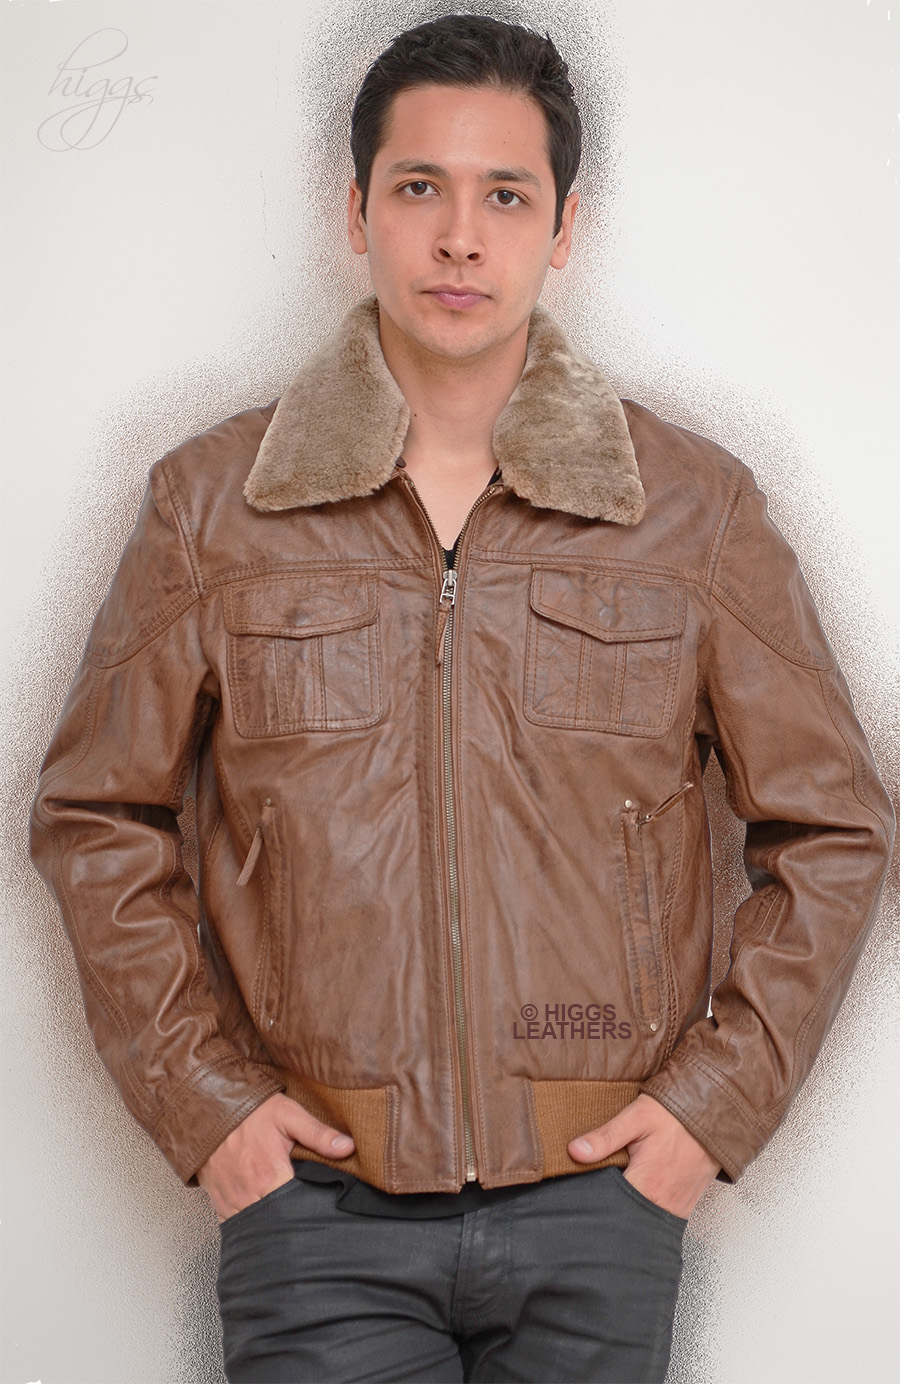 Higgs Leathers {SOLD!}  Molech  (Man's Leather Bomber jacket) ONE ONLY - 42' CHEST!